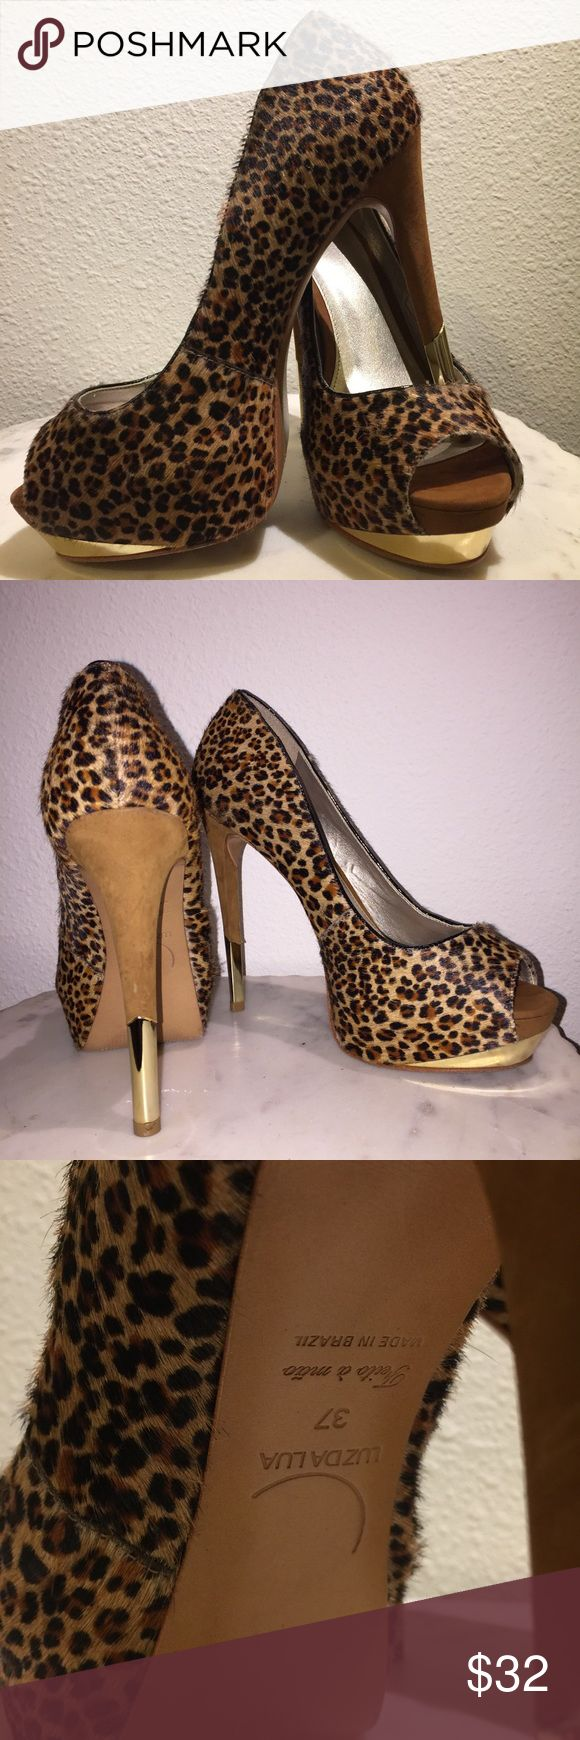 Leopard hair pumps Soft hair and great leather. A head turner shoe. Made in Brazil luz da lua Shoes Heels